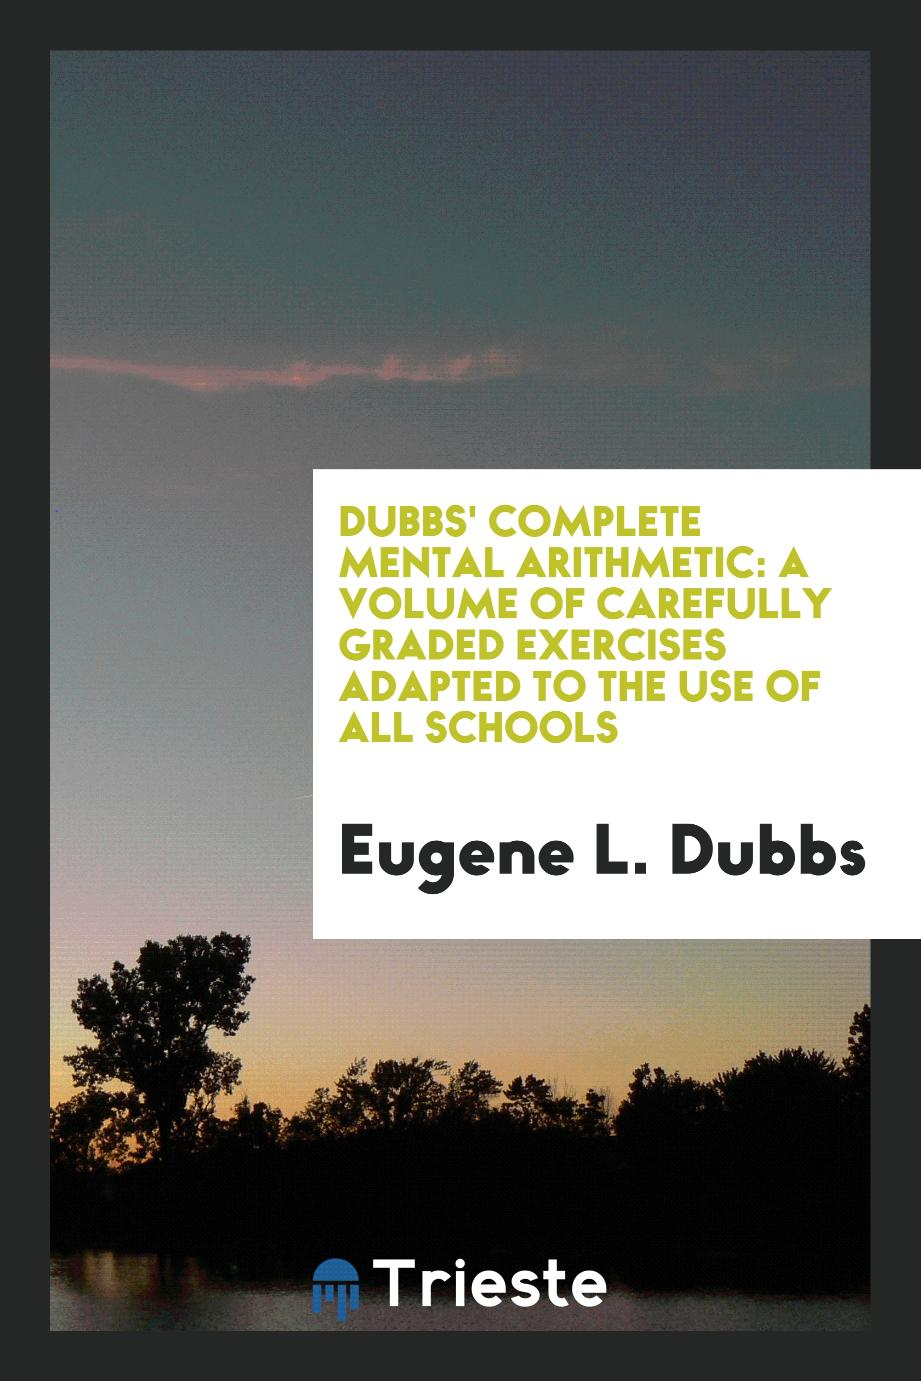 Dubbs' Complete Mental Arithmetic: A Volume of Carefully Graded Exercises Adapted to the Use of All Schools